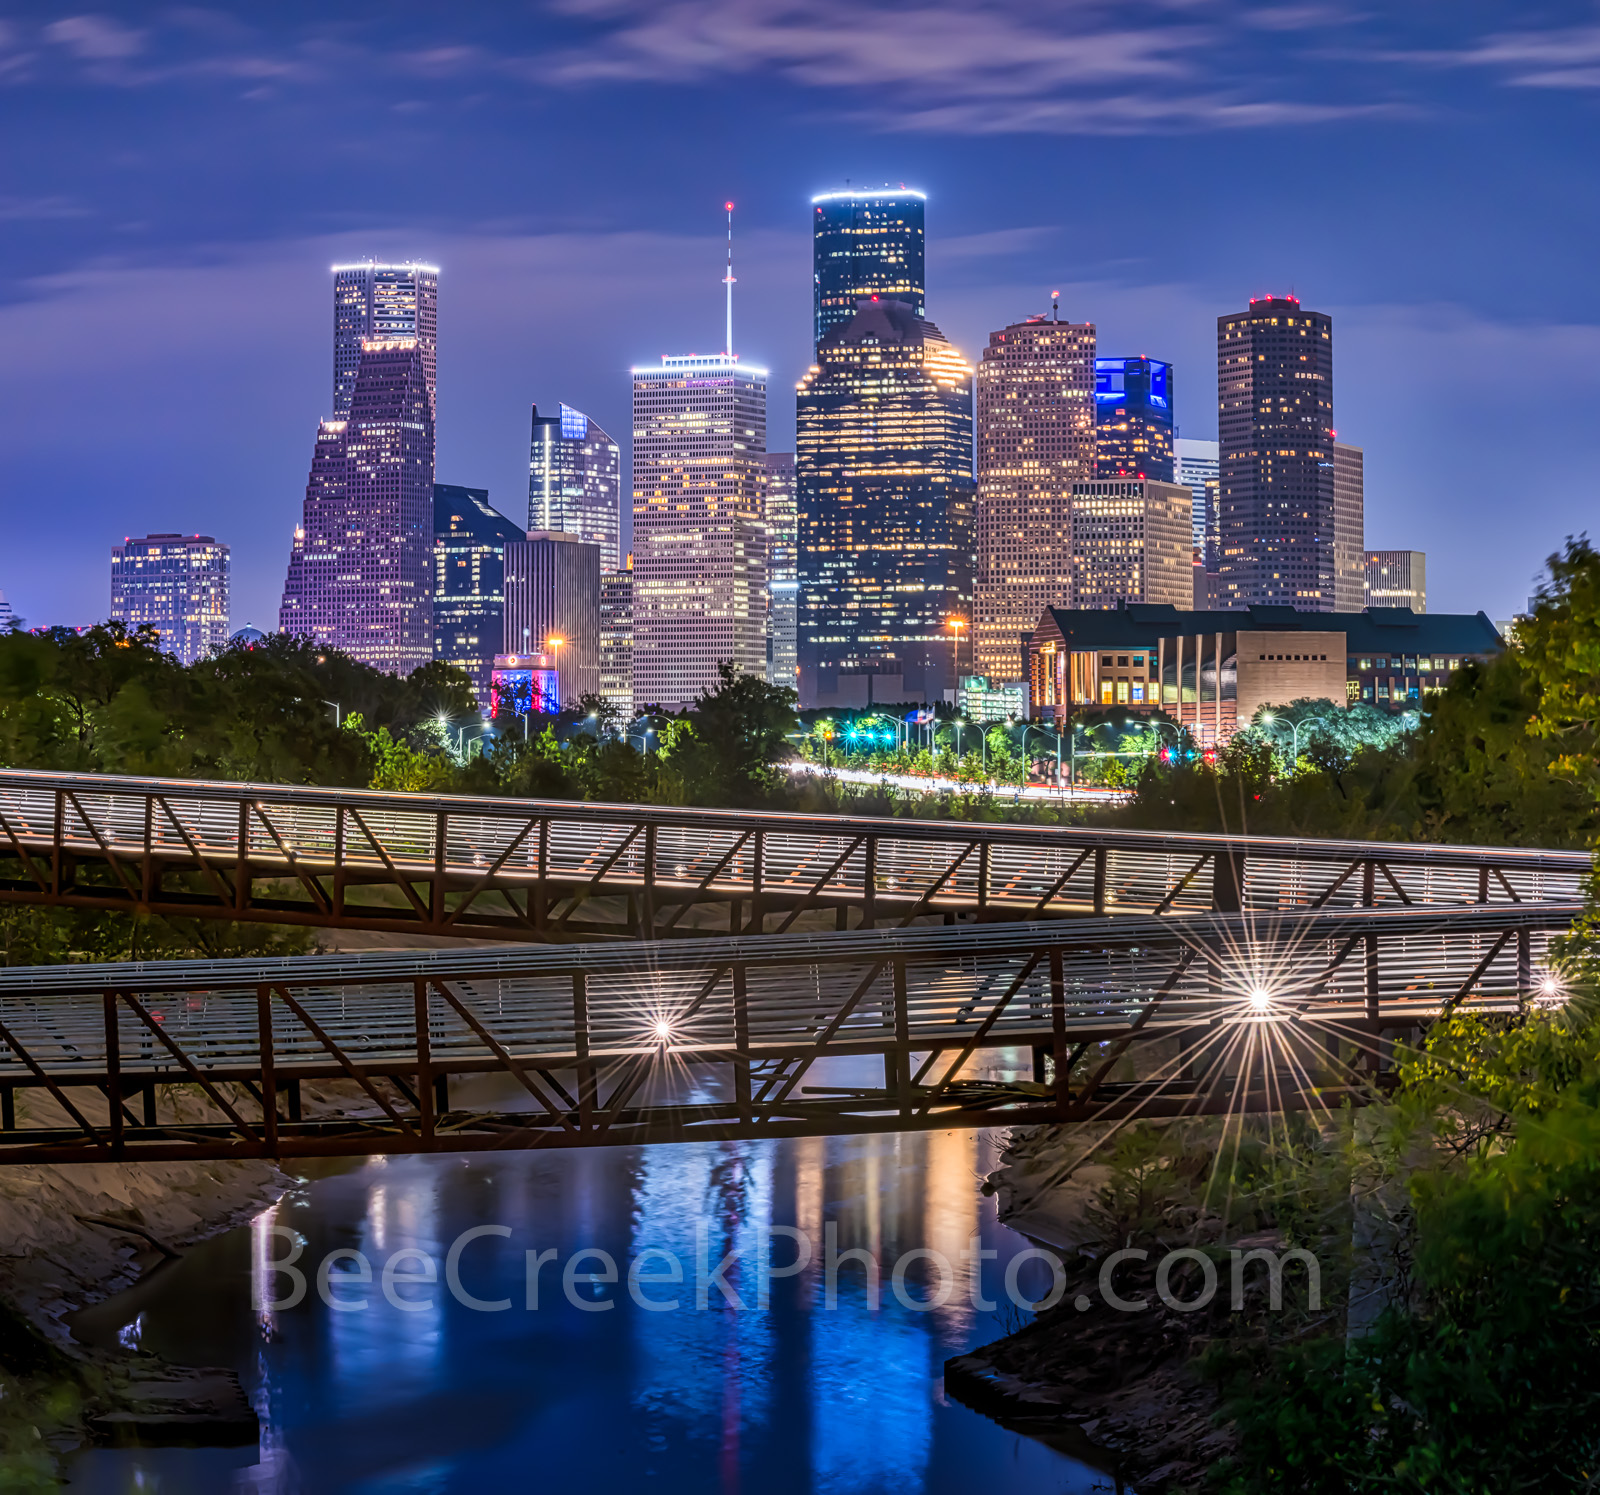 Houston skyline, Rosemont, pedestrian bridge, pano, panorama, buffalo Bayou, downtown,night, city, parks, cultural events, theater district, sports, music, events, performing arts, art groups, opera, , photo